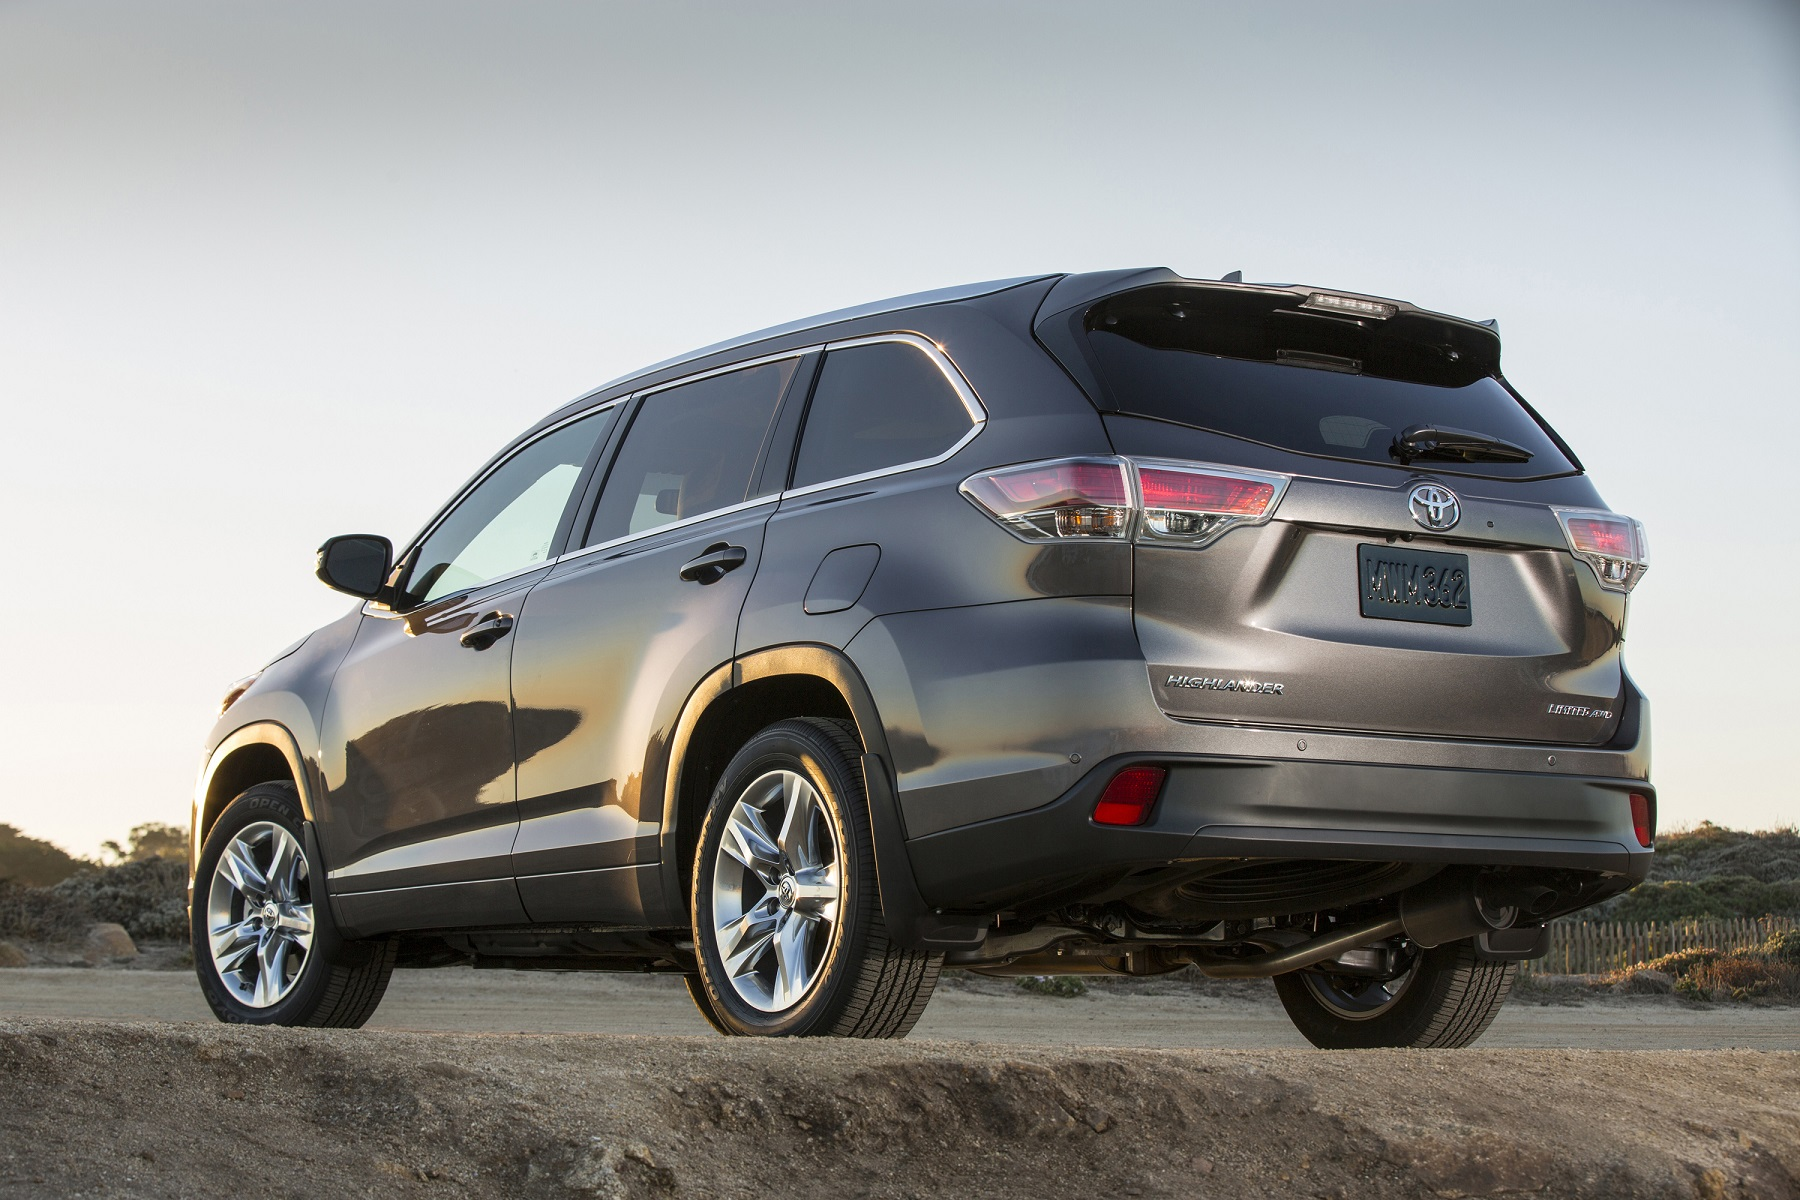 Manufacturer photo: The new 2014 Toyota Highlander features a progressive silhouette, a lower roofline for improved aerodynamics, and sculptured side-door panels